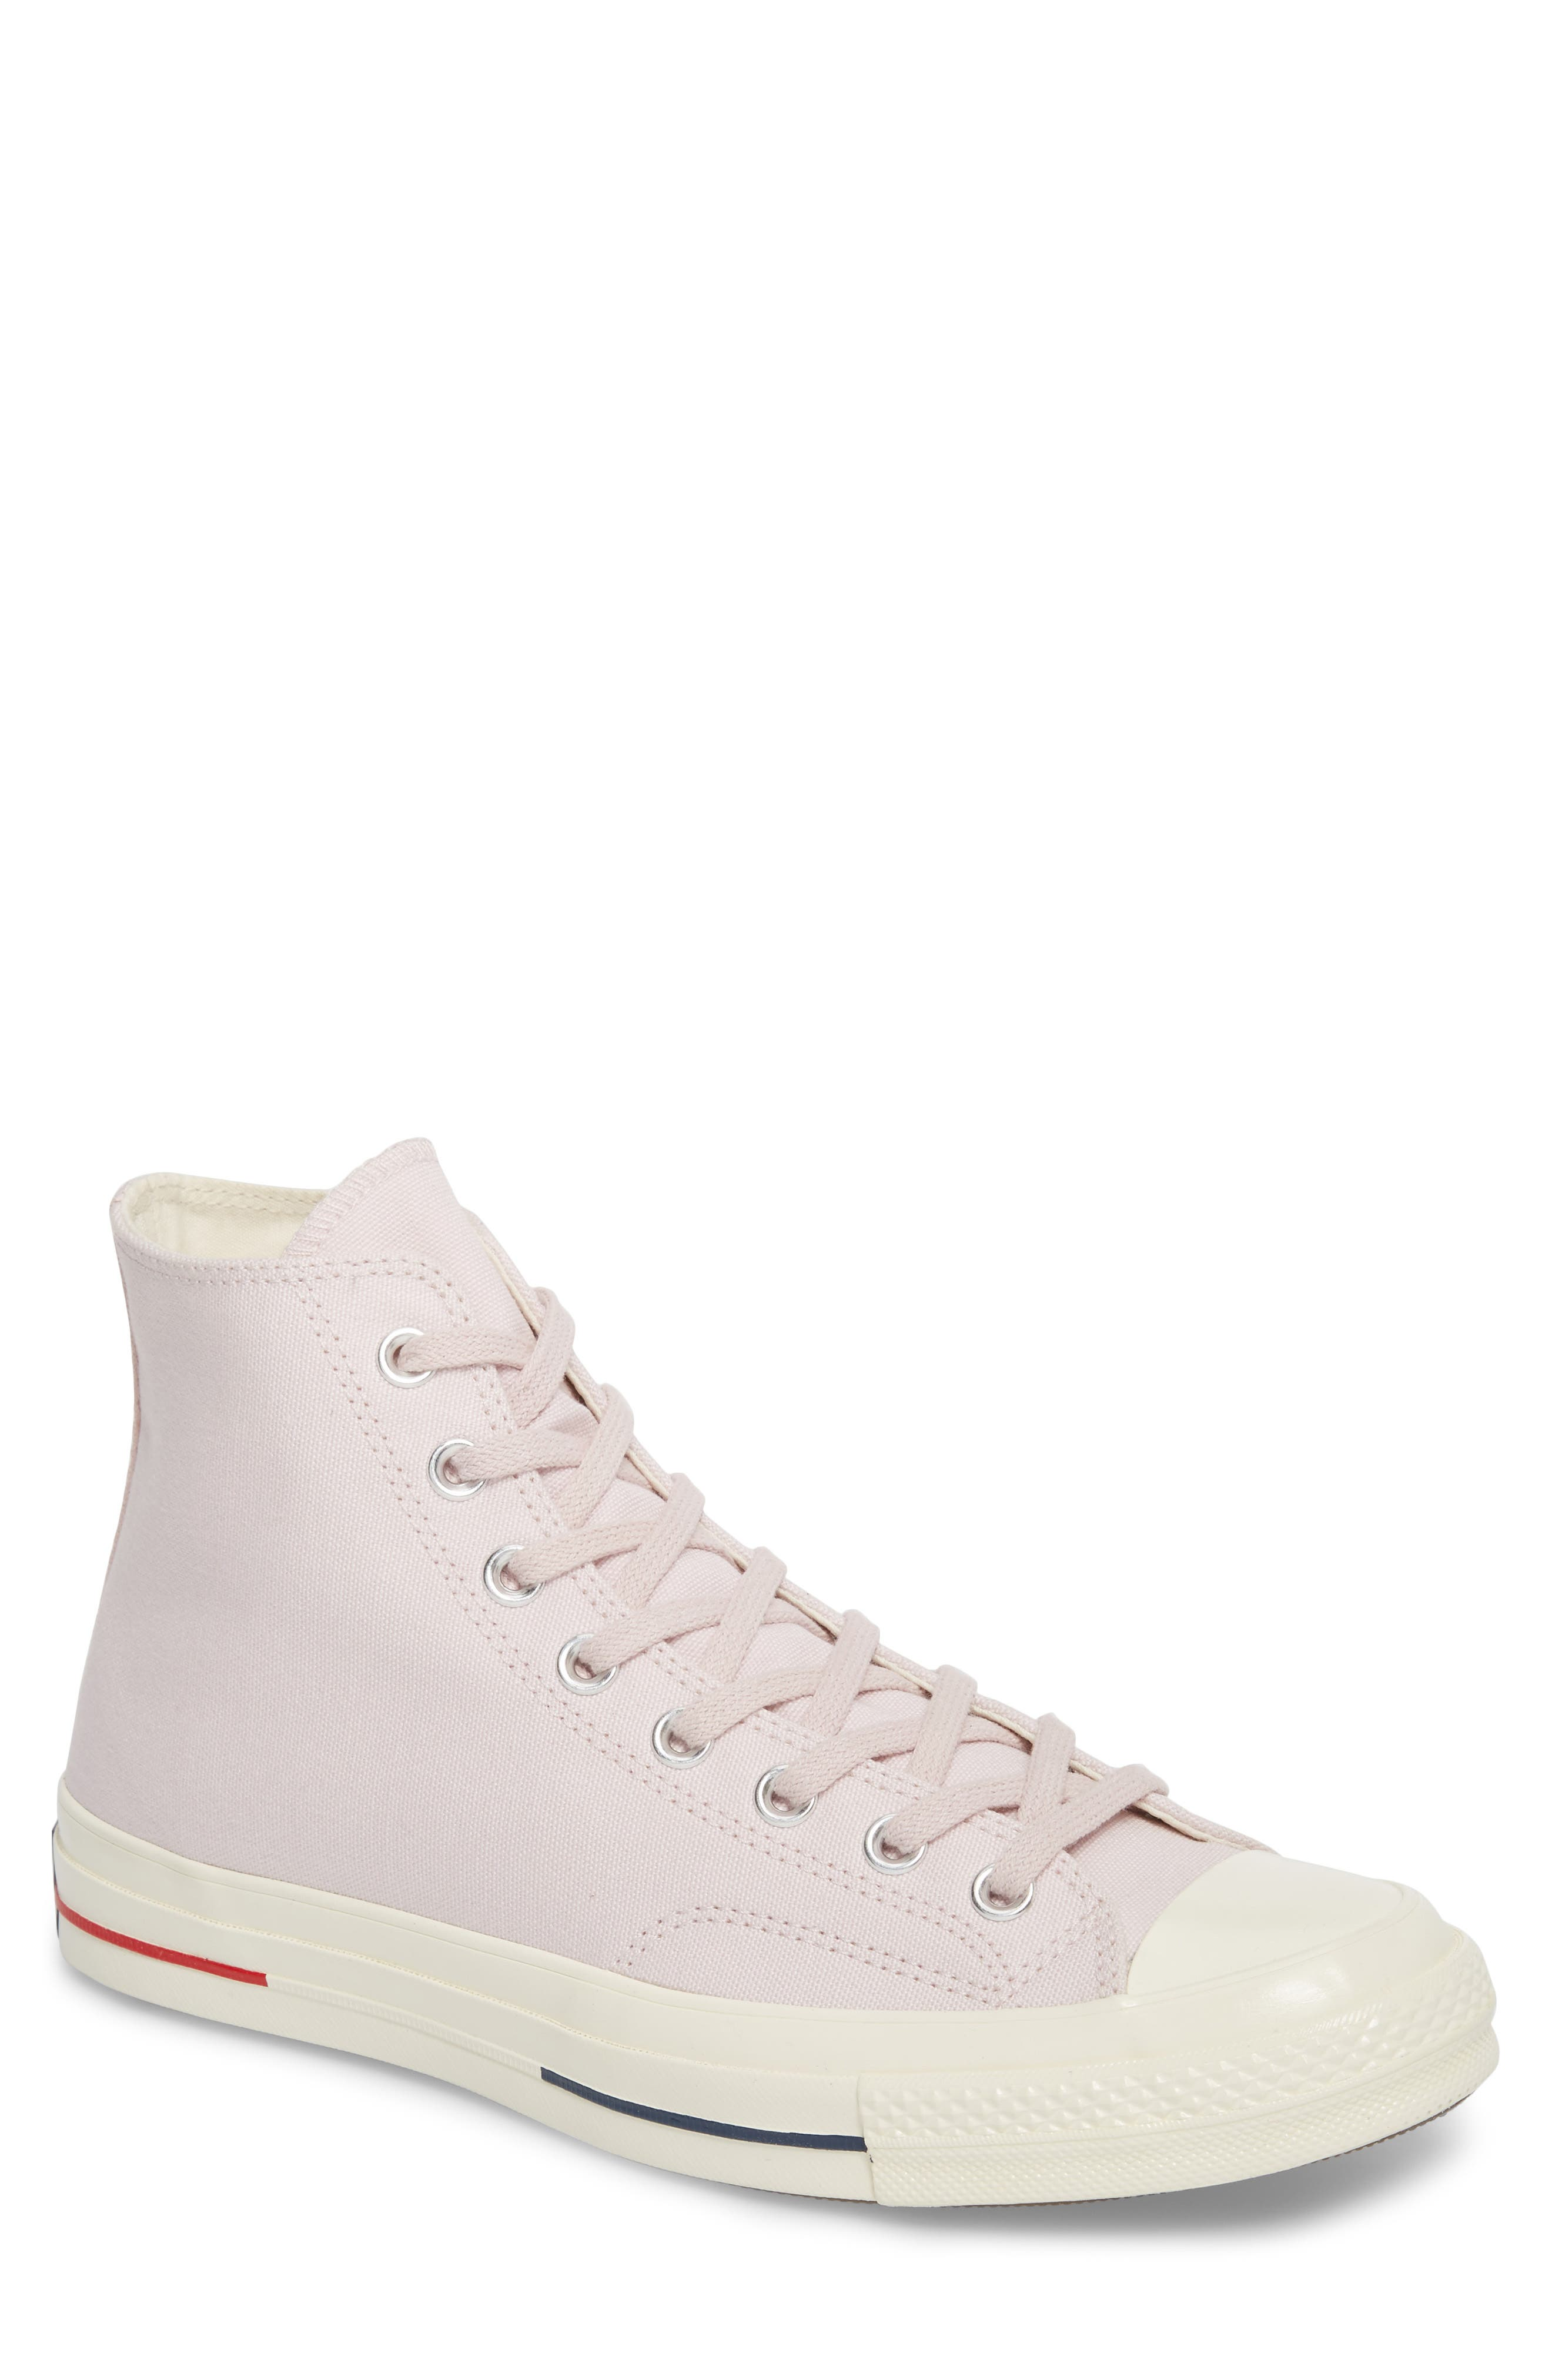 Chuck Taylor<sup>®</sup> All Star<sup>®</sup> '70 Heritage High Top Sneaker,                         Main,                         color,